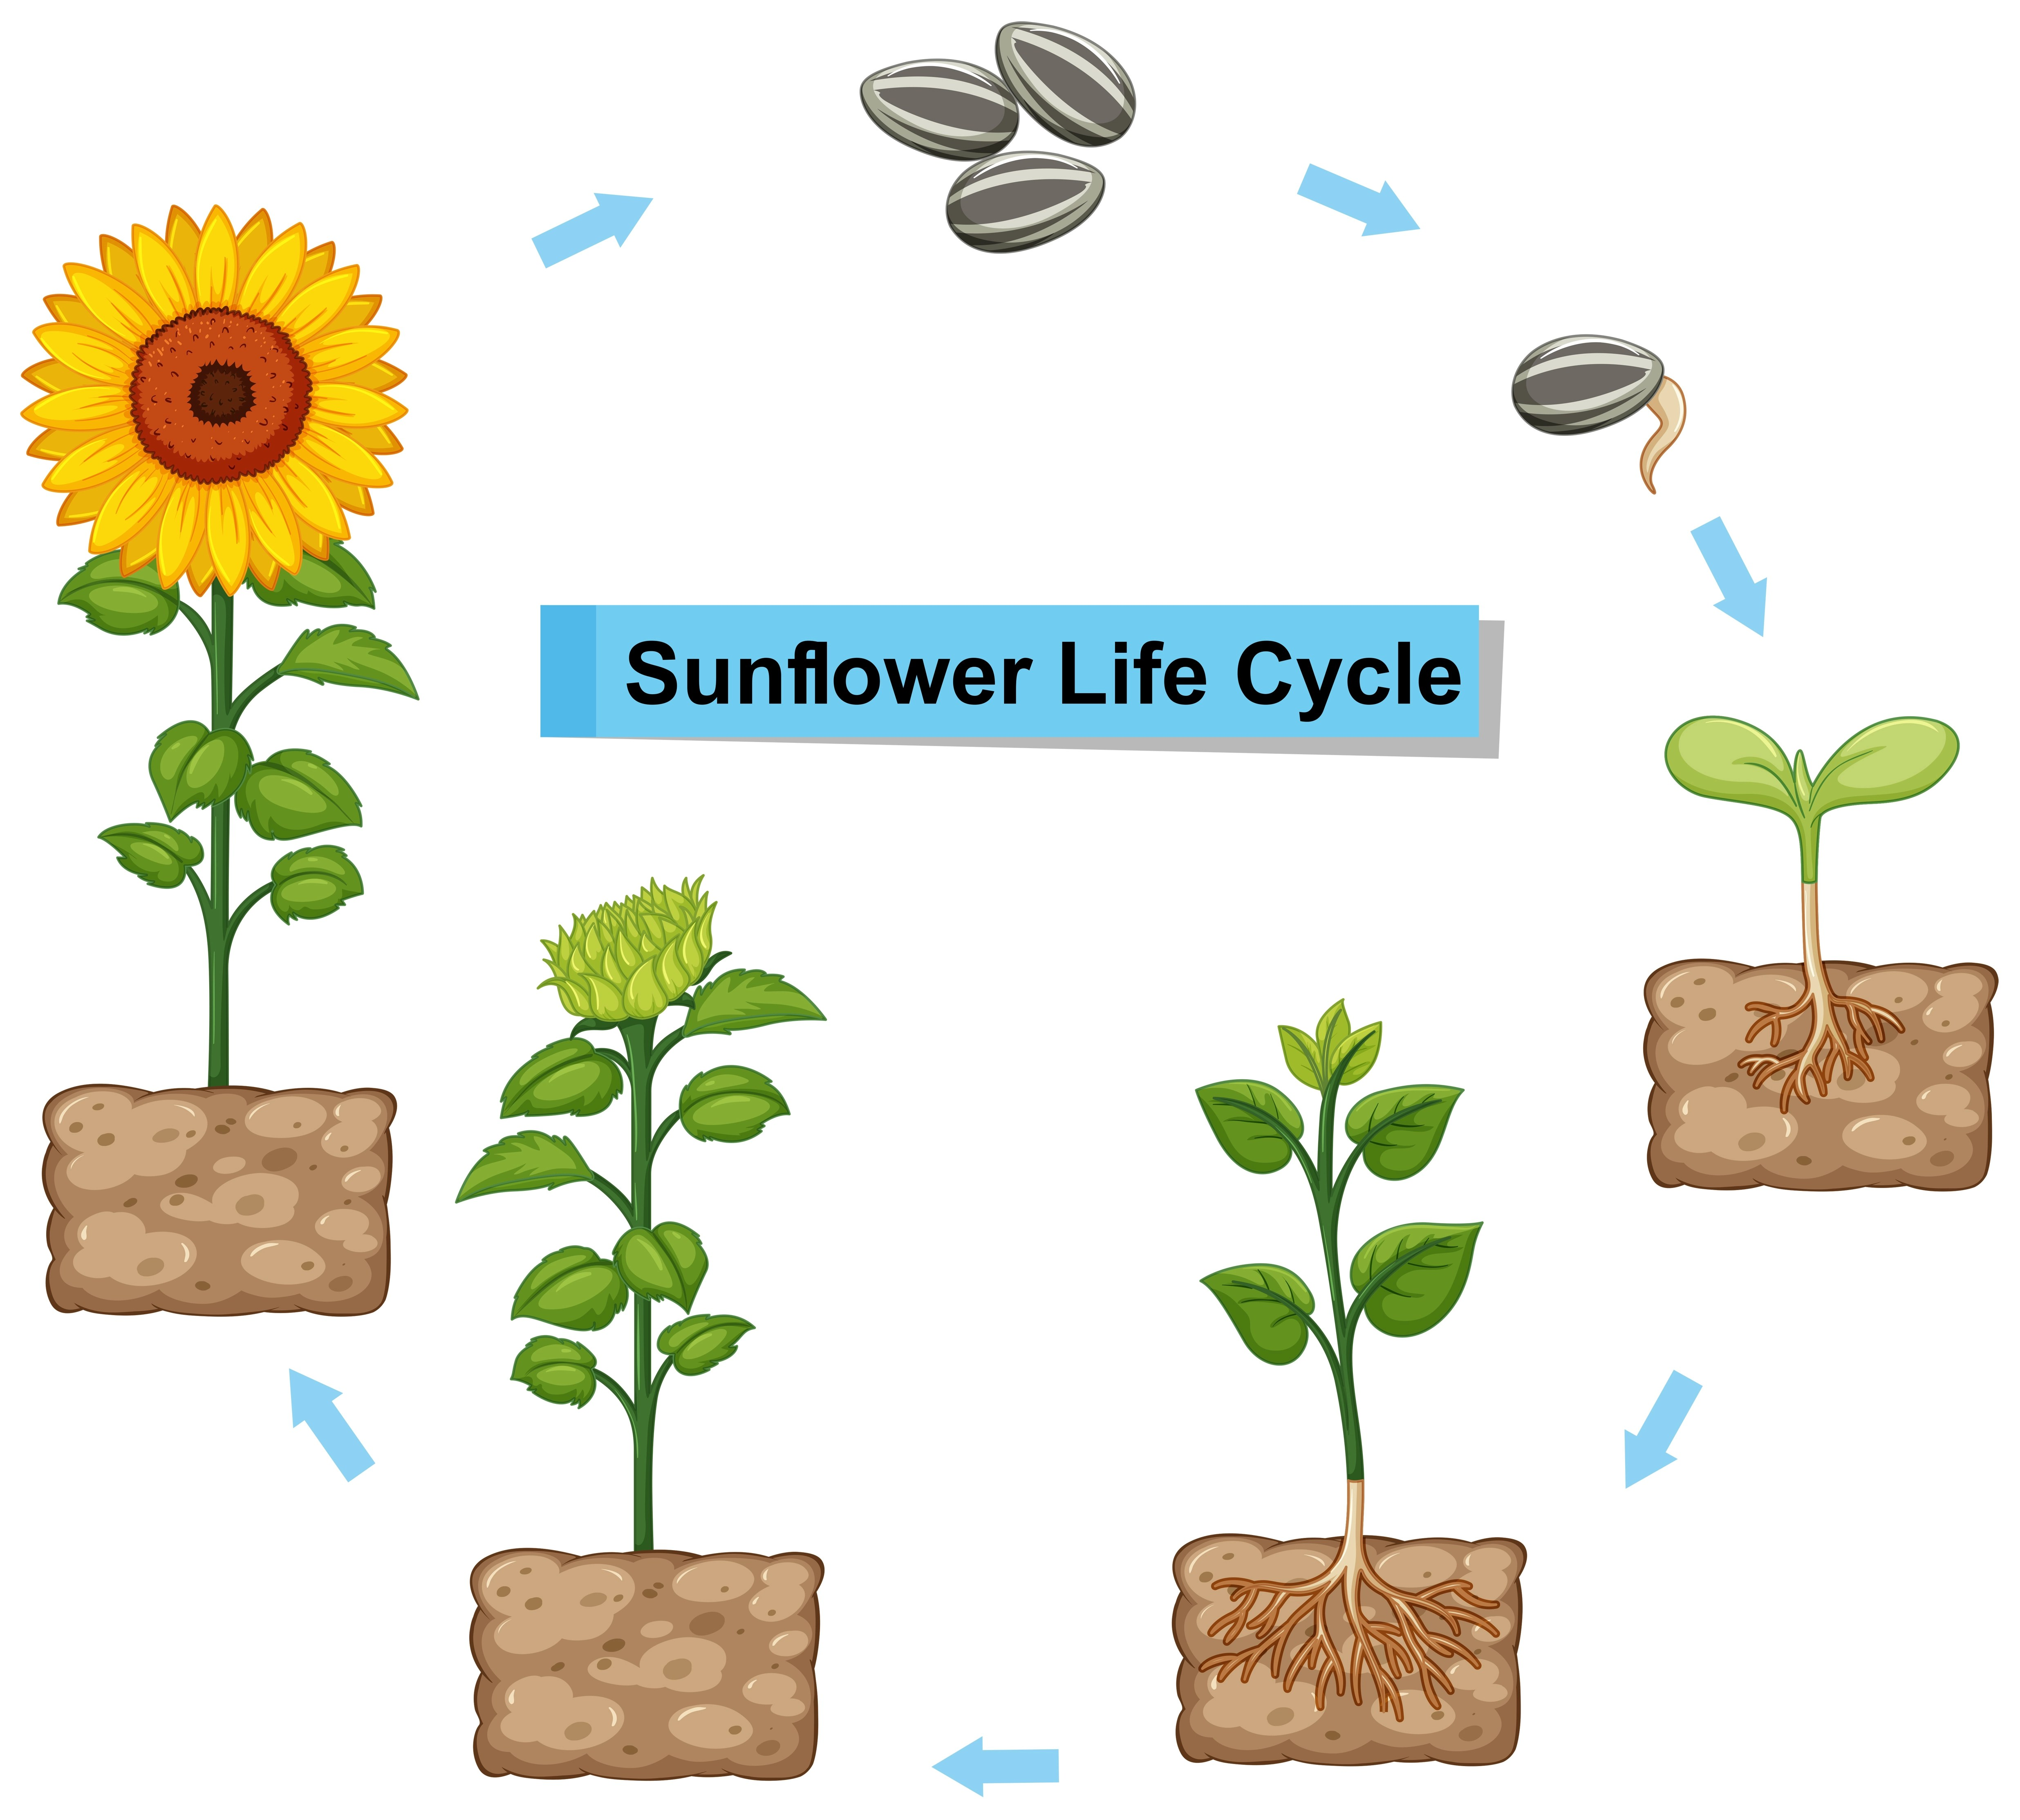 Diagram Showing Life Cycle Of Sunflower